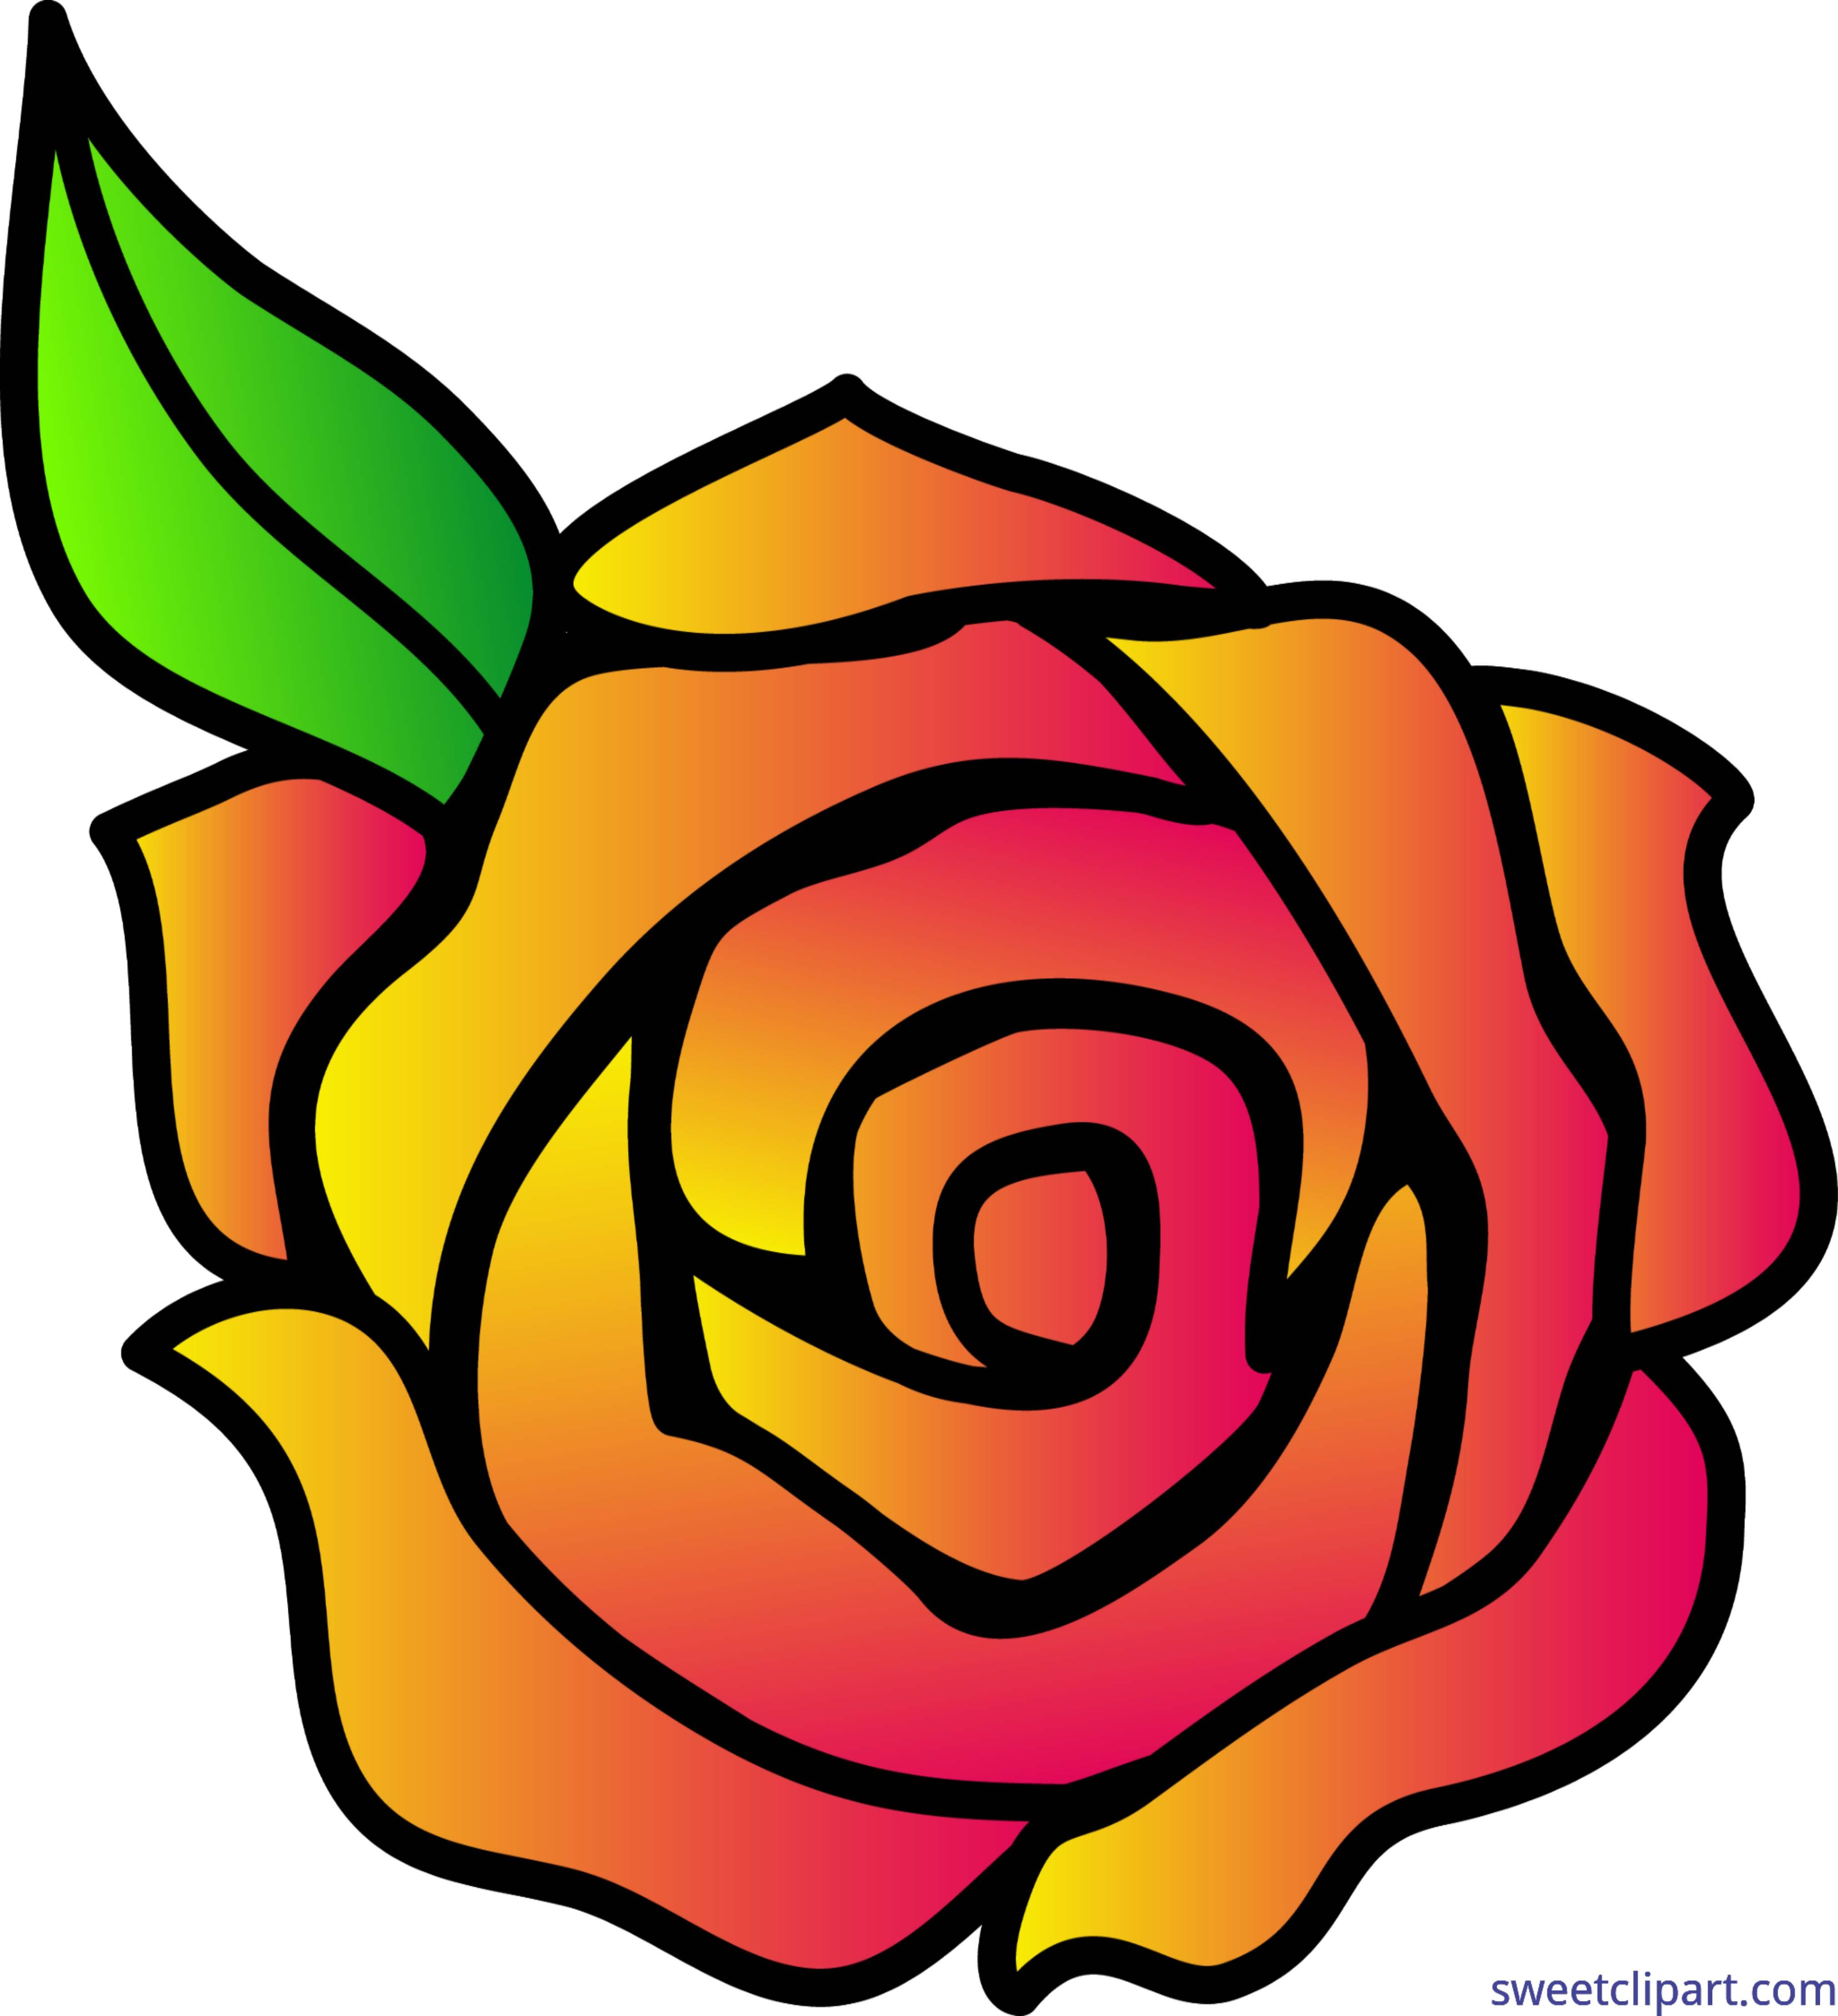 Red Rose Cartoon Style Png Clipart Gallery Yopriceville High Quality Images And Transparent Png Free Clipart Red Roses Cartoon Flowers Red Rose Png